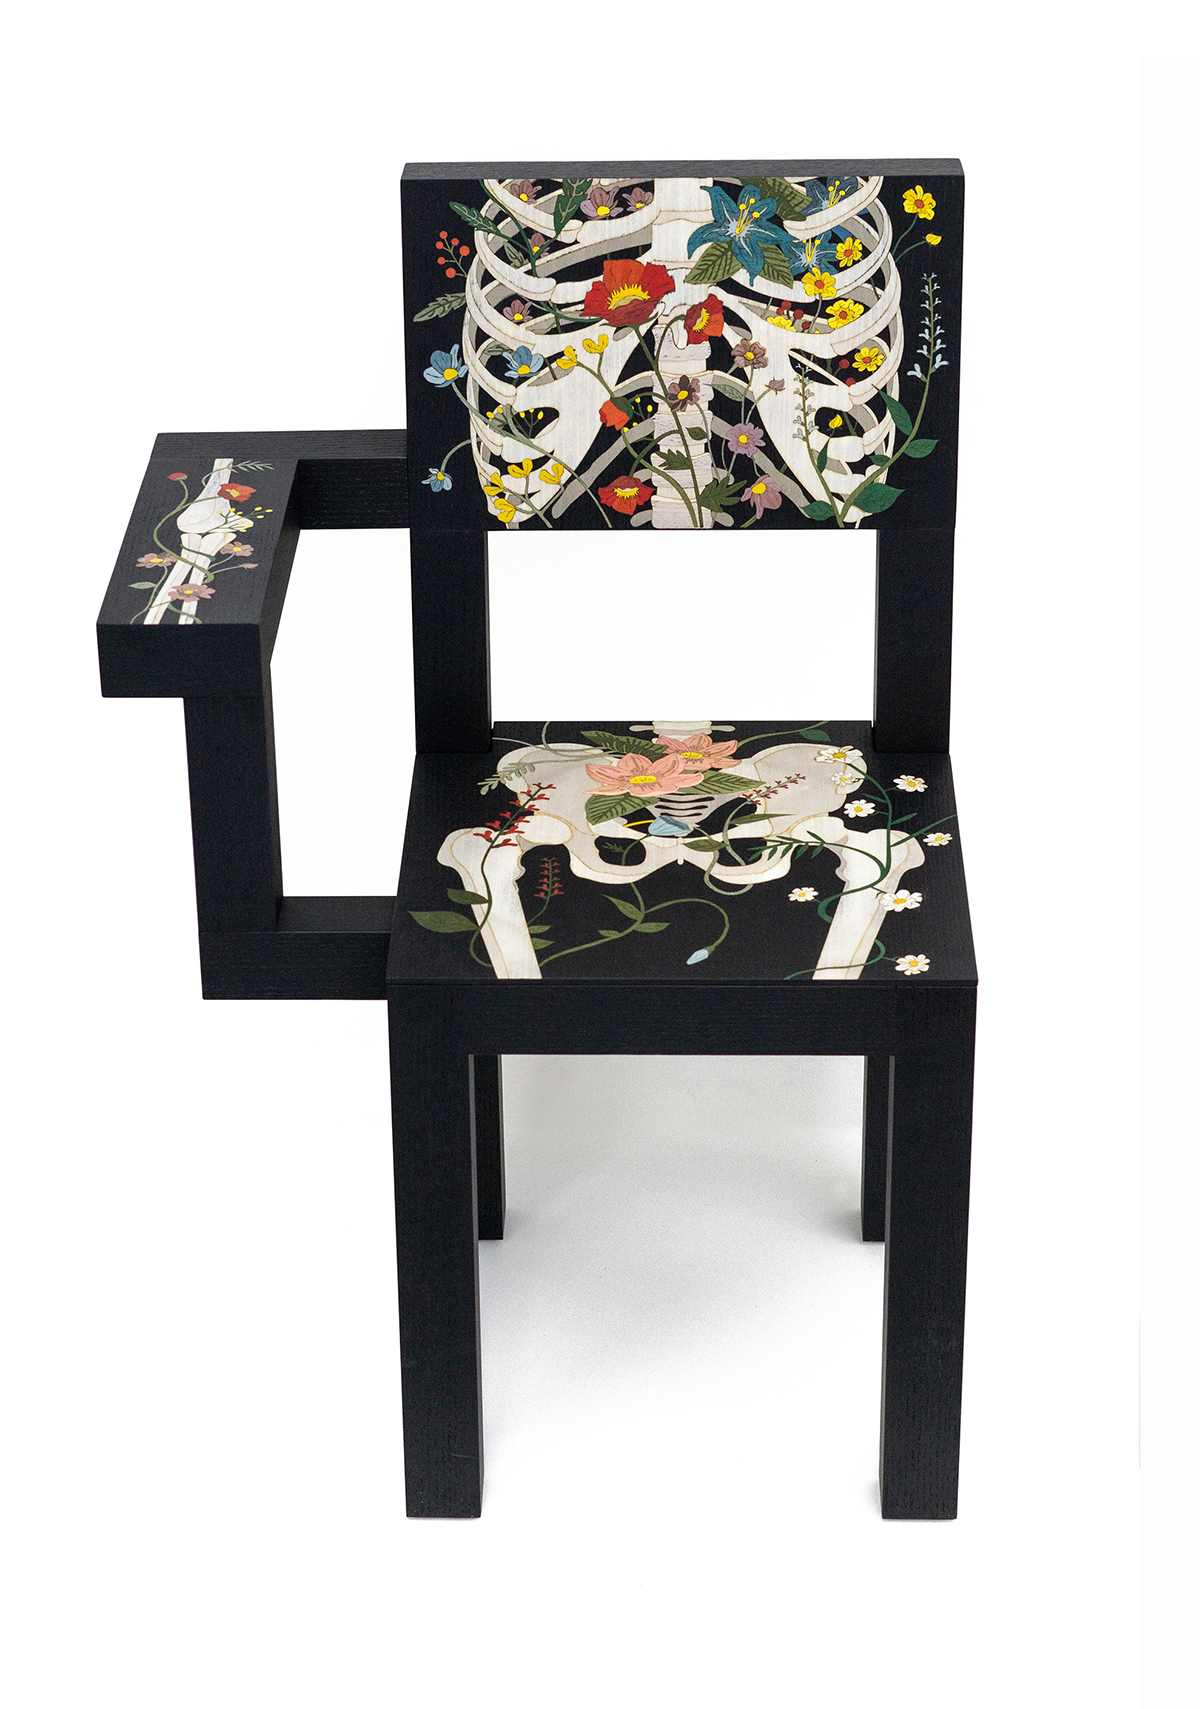 LIFE AFTER LIFE CHAIR - Marcantonio design